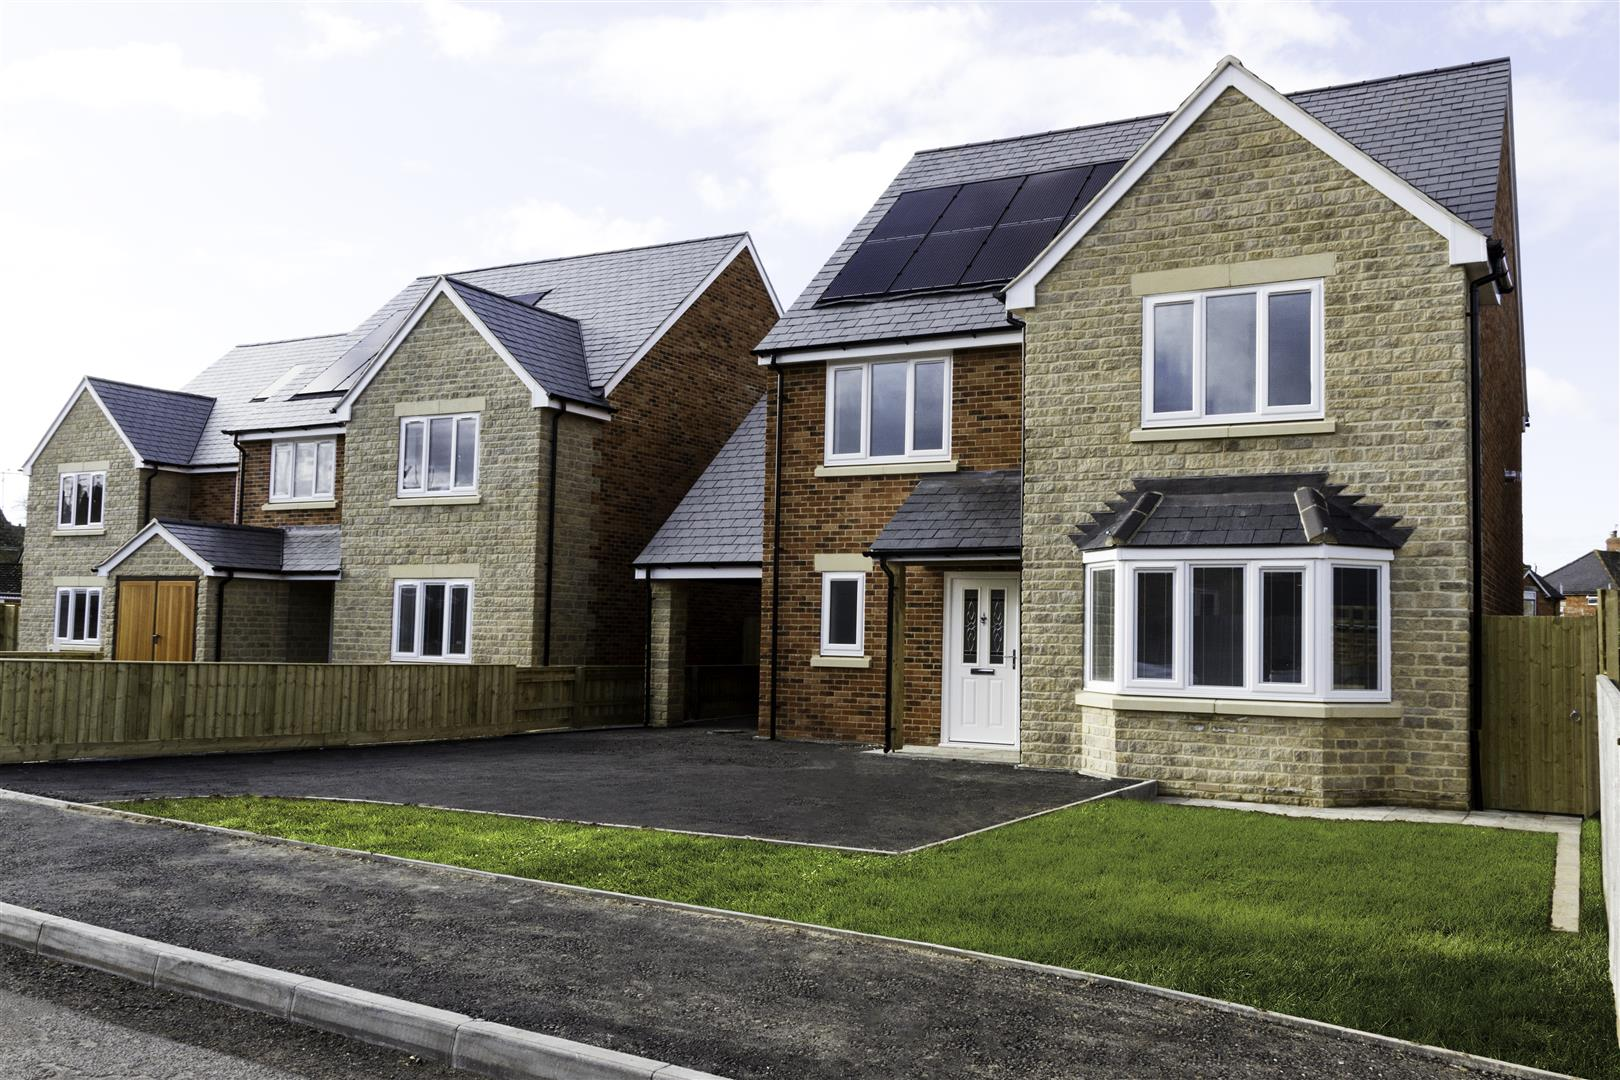 5 Bedrooms Detached House for sale in Witts Lane, Purton, Swindon